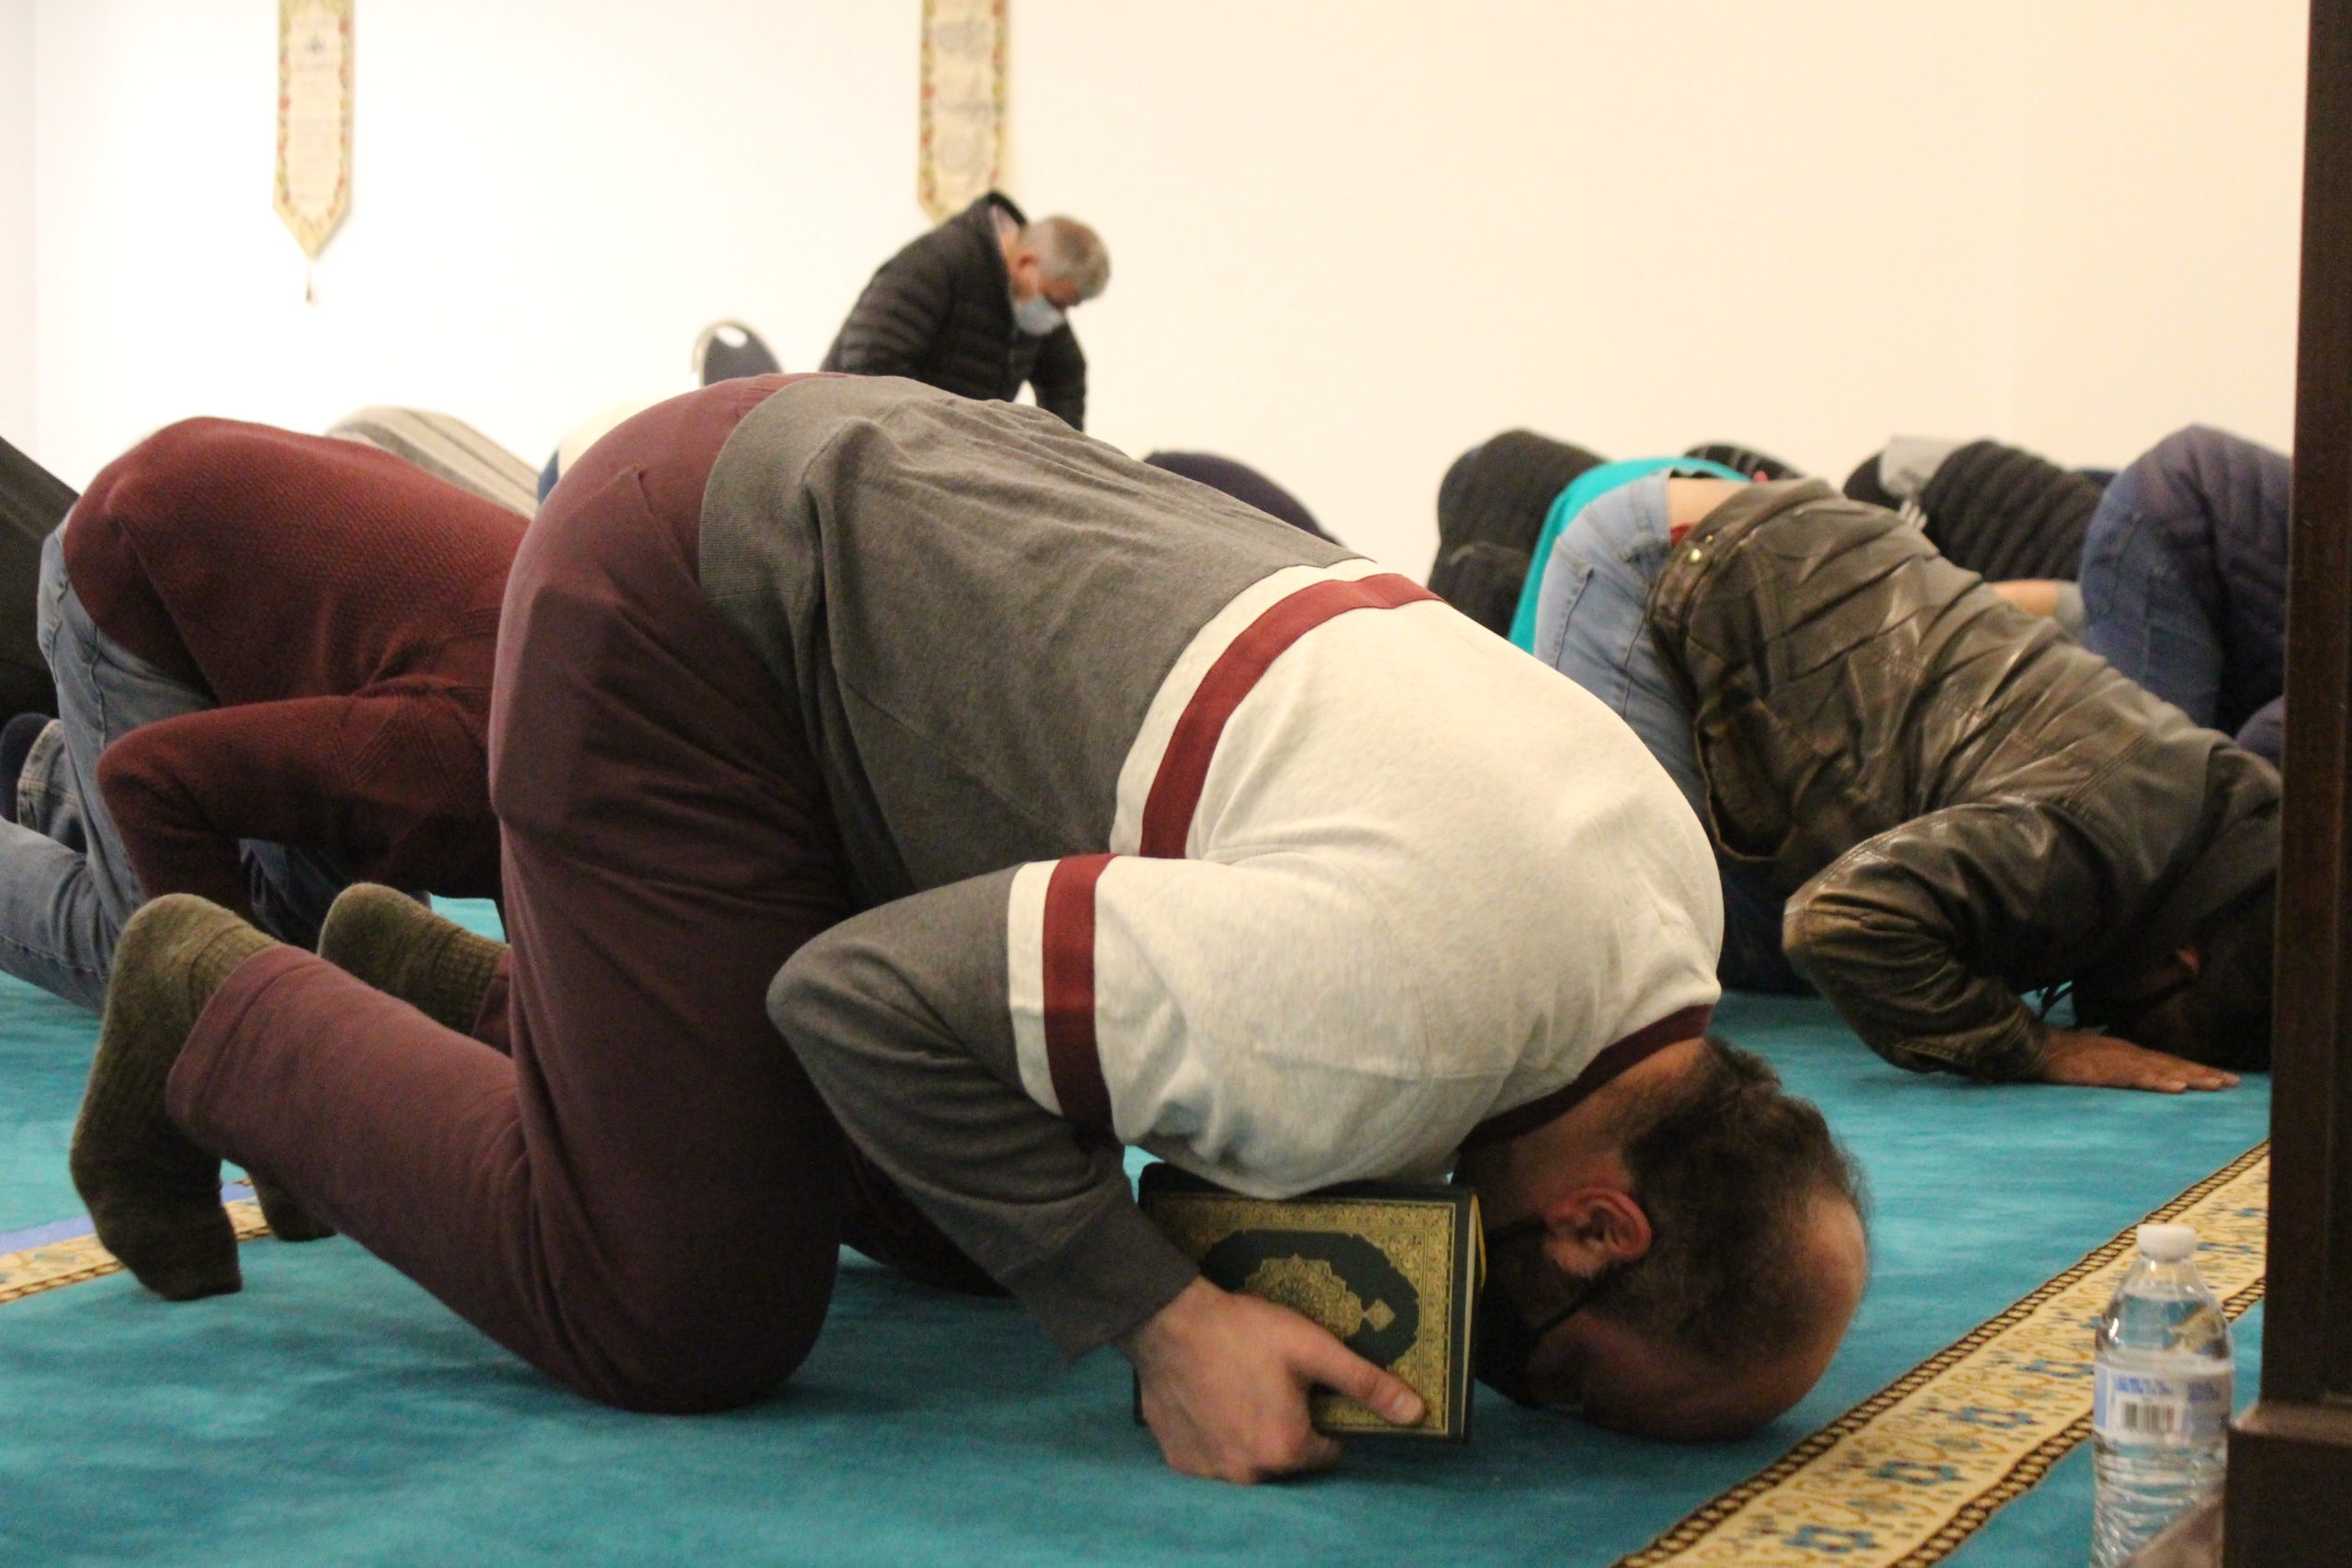 After a year of pandemic isolation, Anchorage Muslims return to mosque for Ramadan - Alaska Public Media